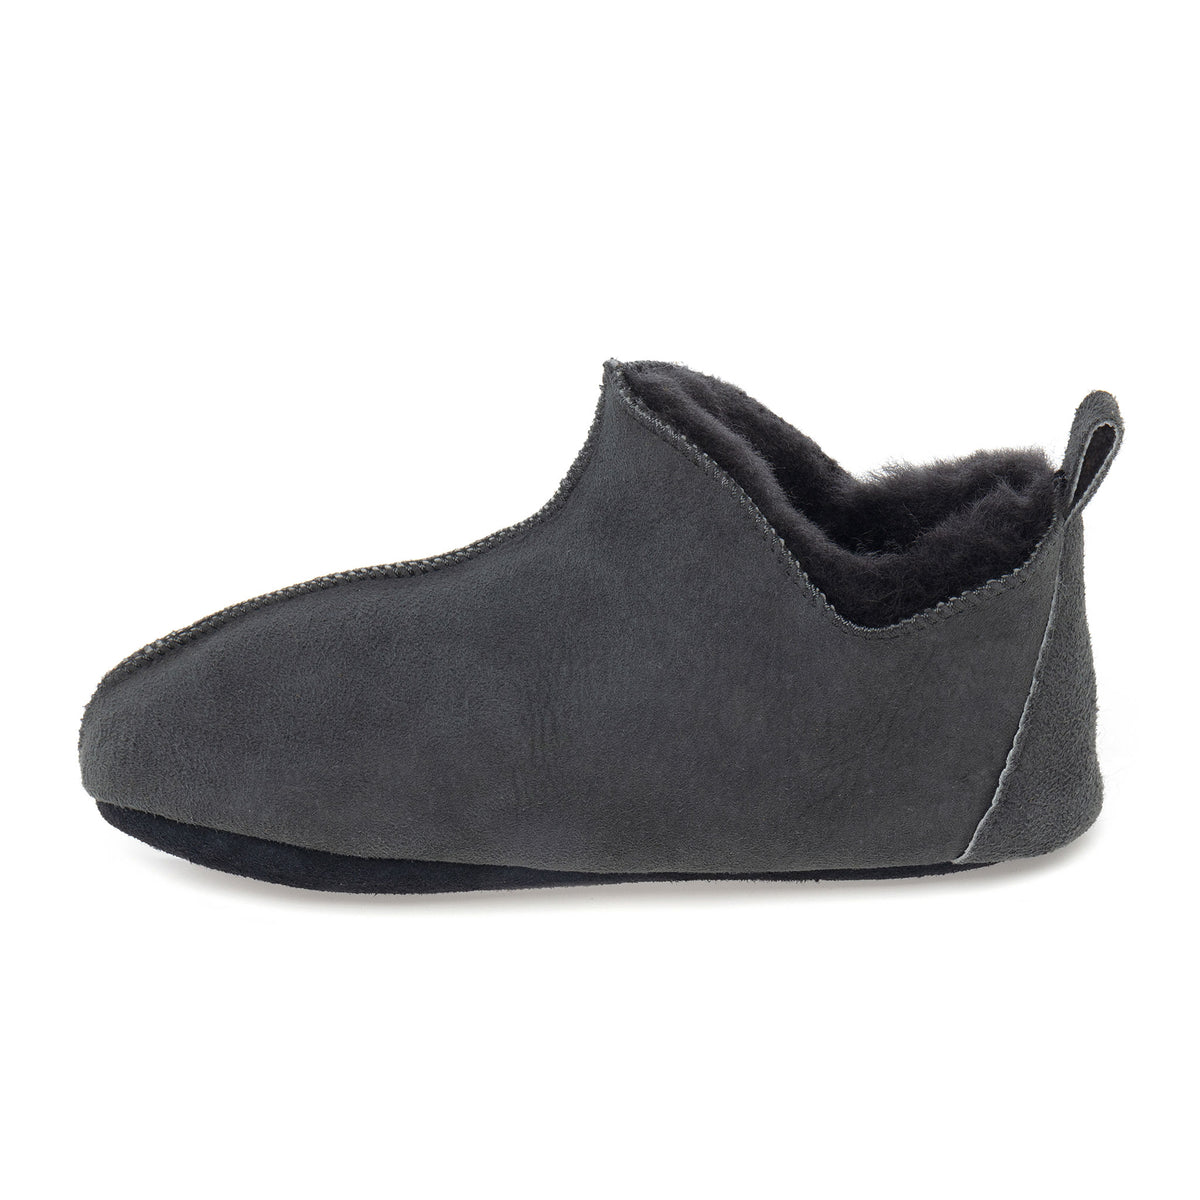 Berit Sheepskin Slippers - Graphite